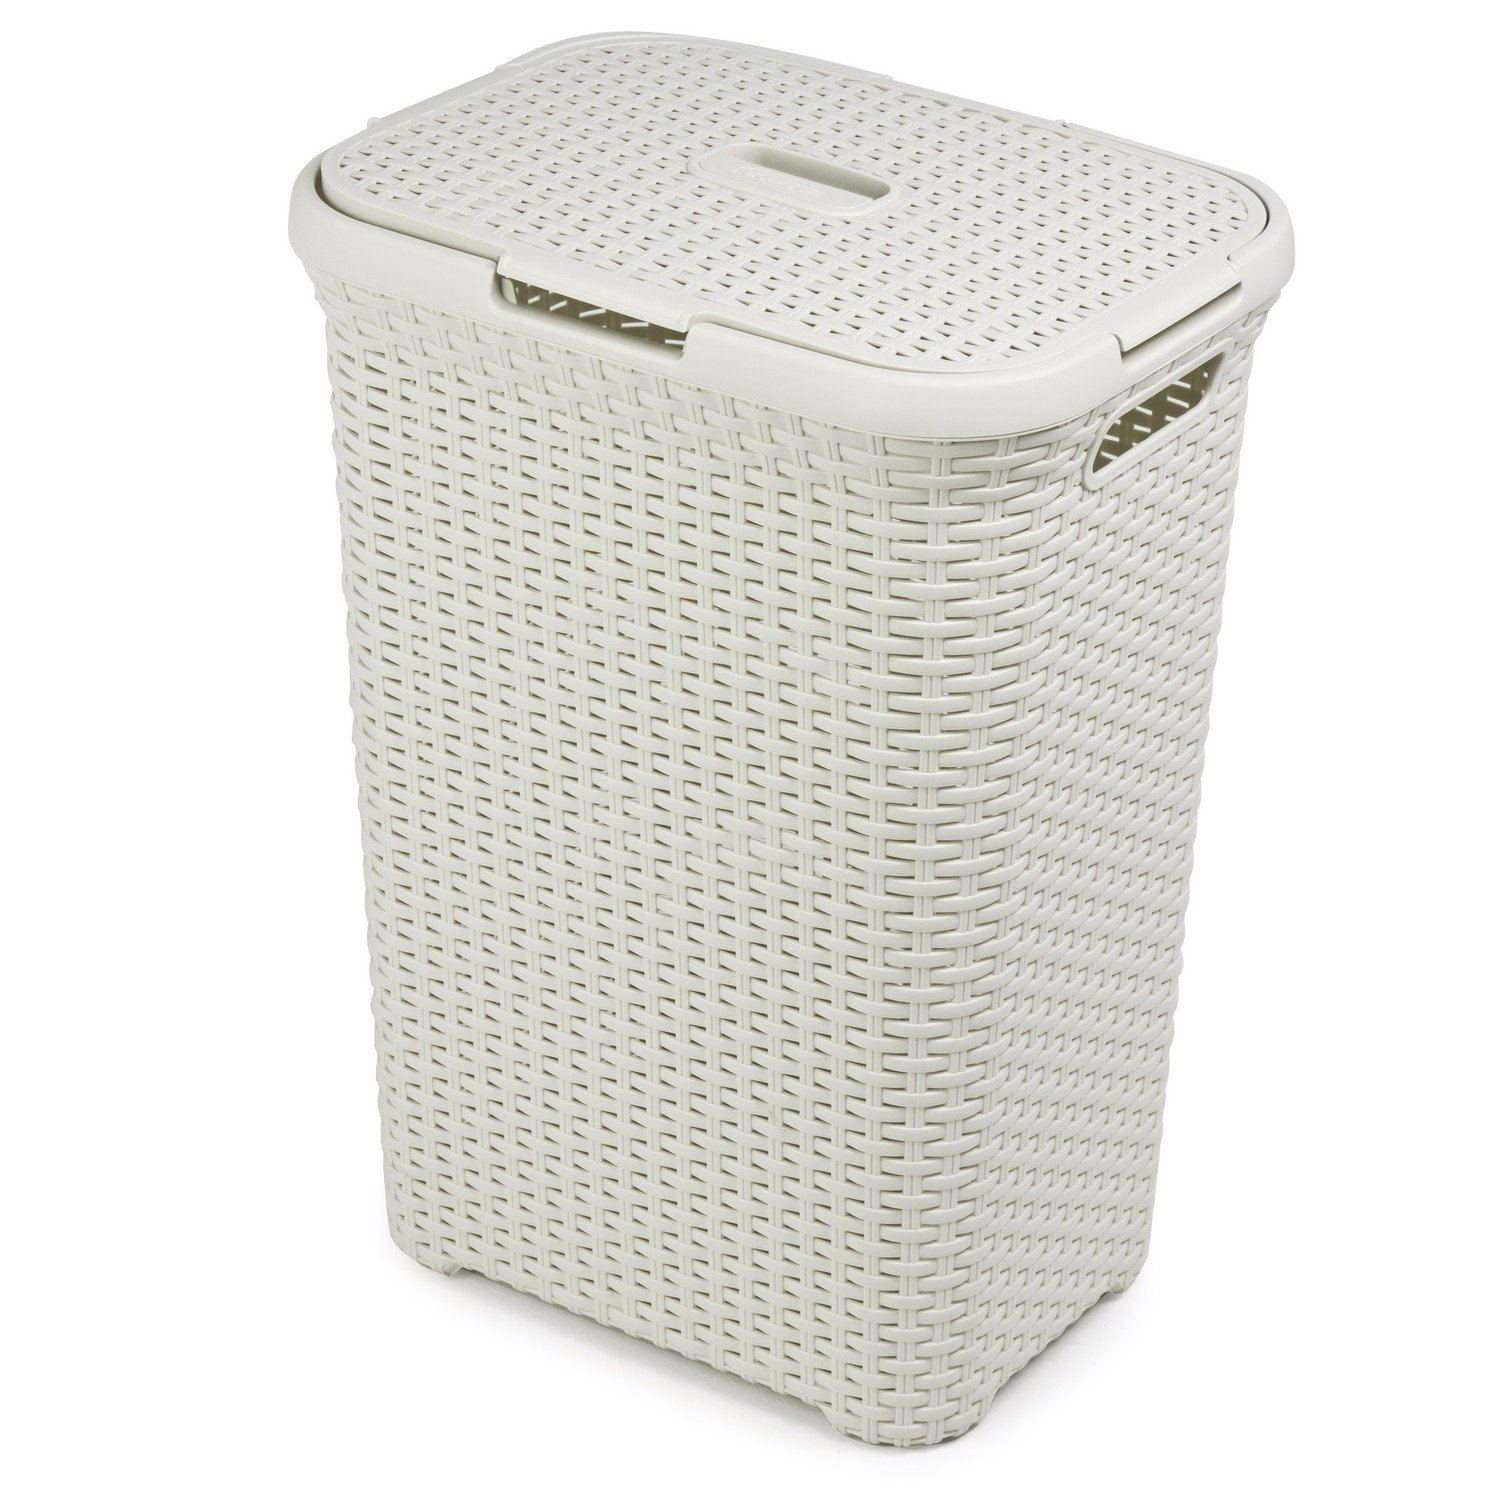 60 ltr rattan design laundry bin washing basket bucket hamper storage bag white ebay - Whites and darks laundry basket ...